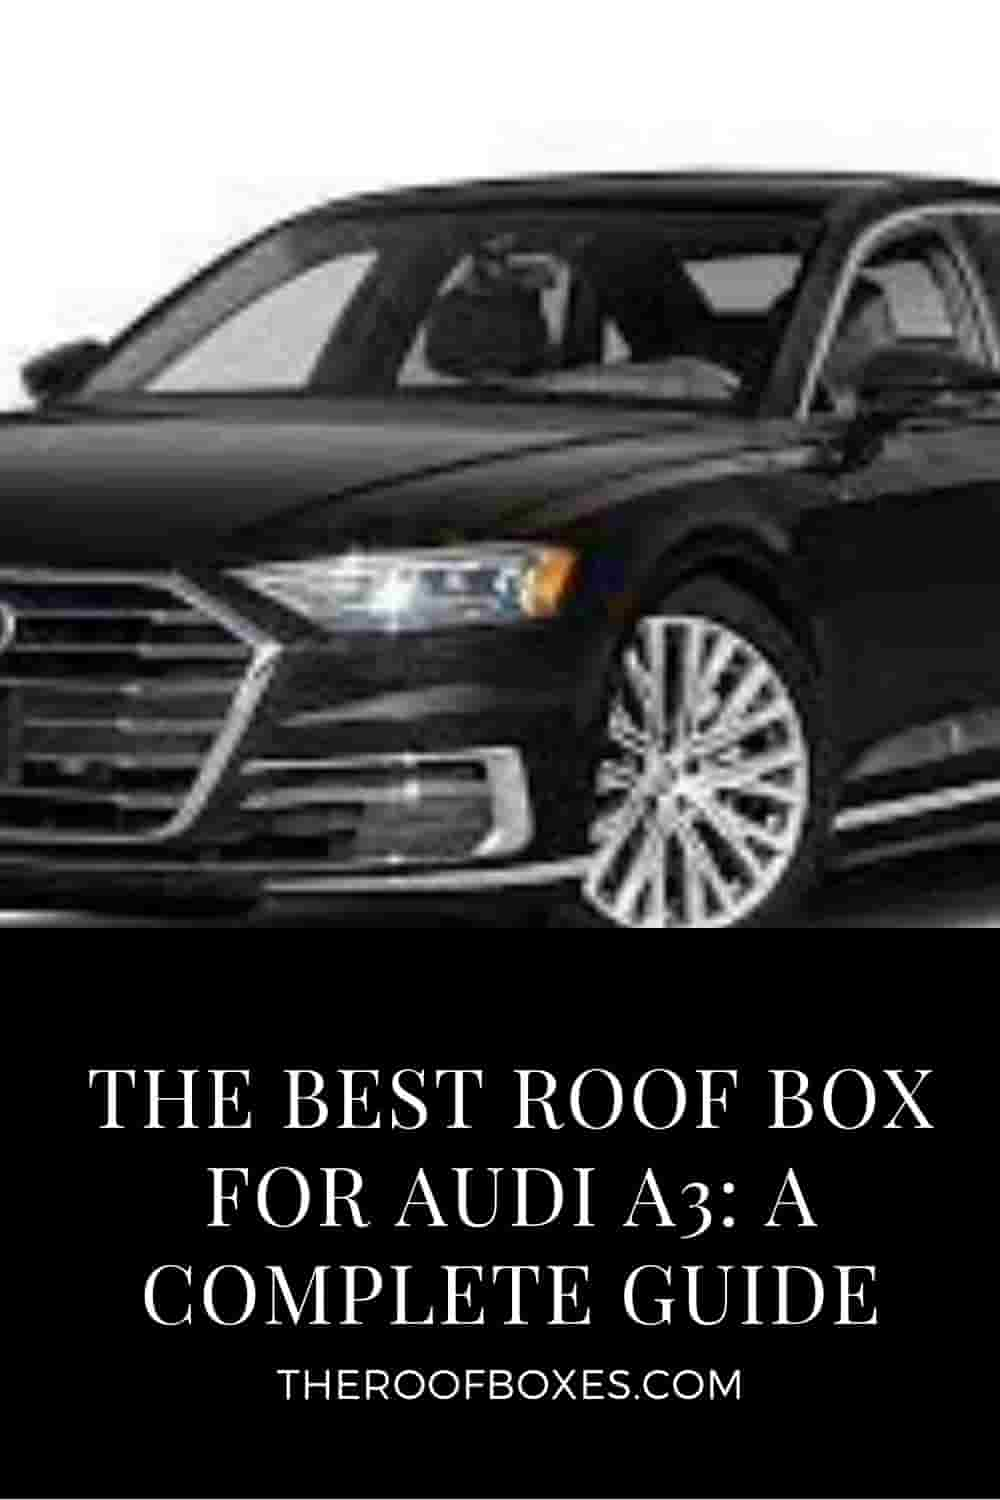 Roof Box for Audi A3 – Reviews and Comparison